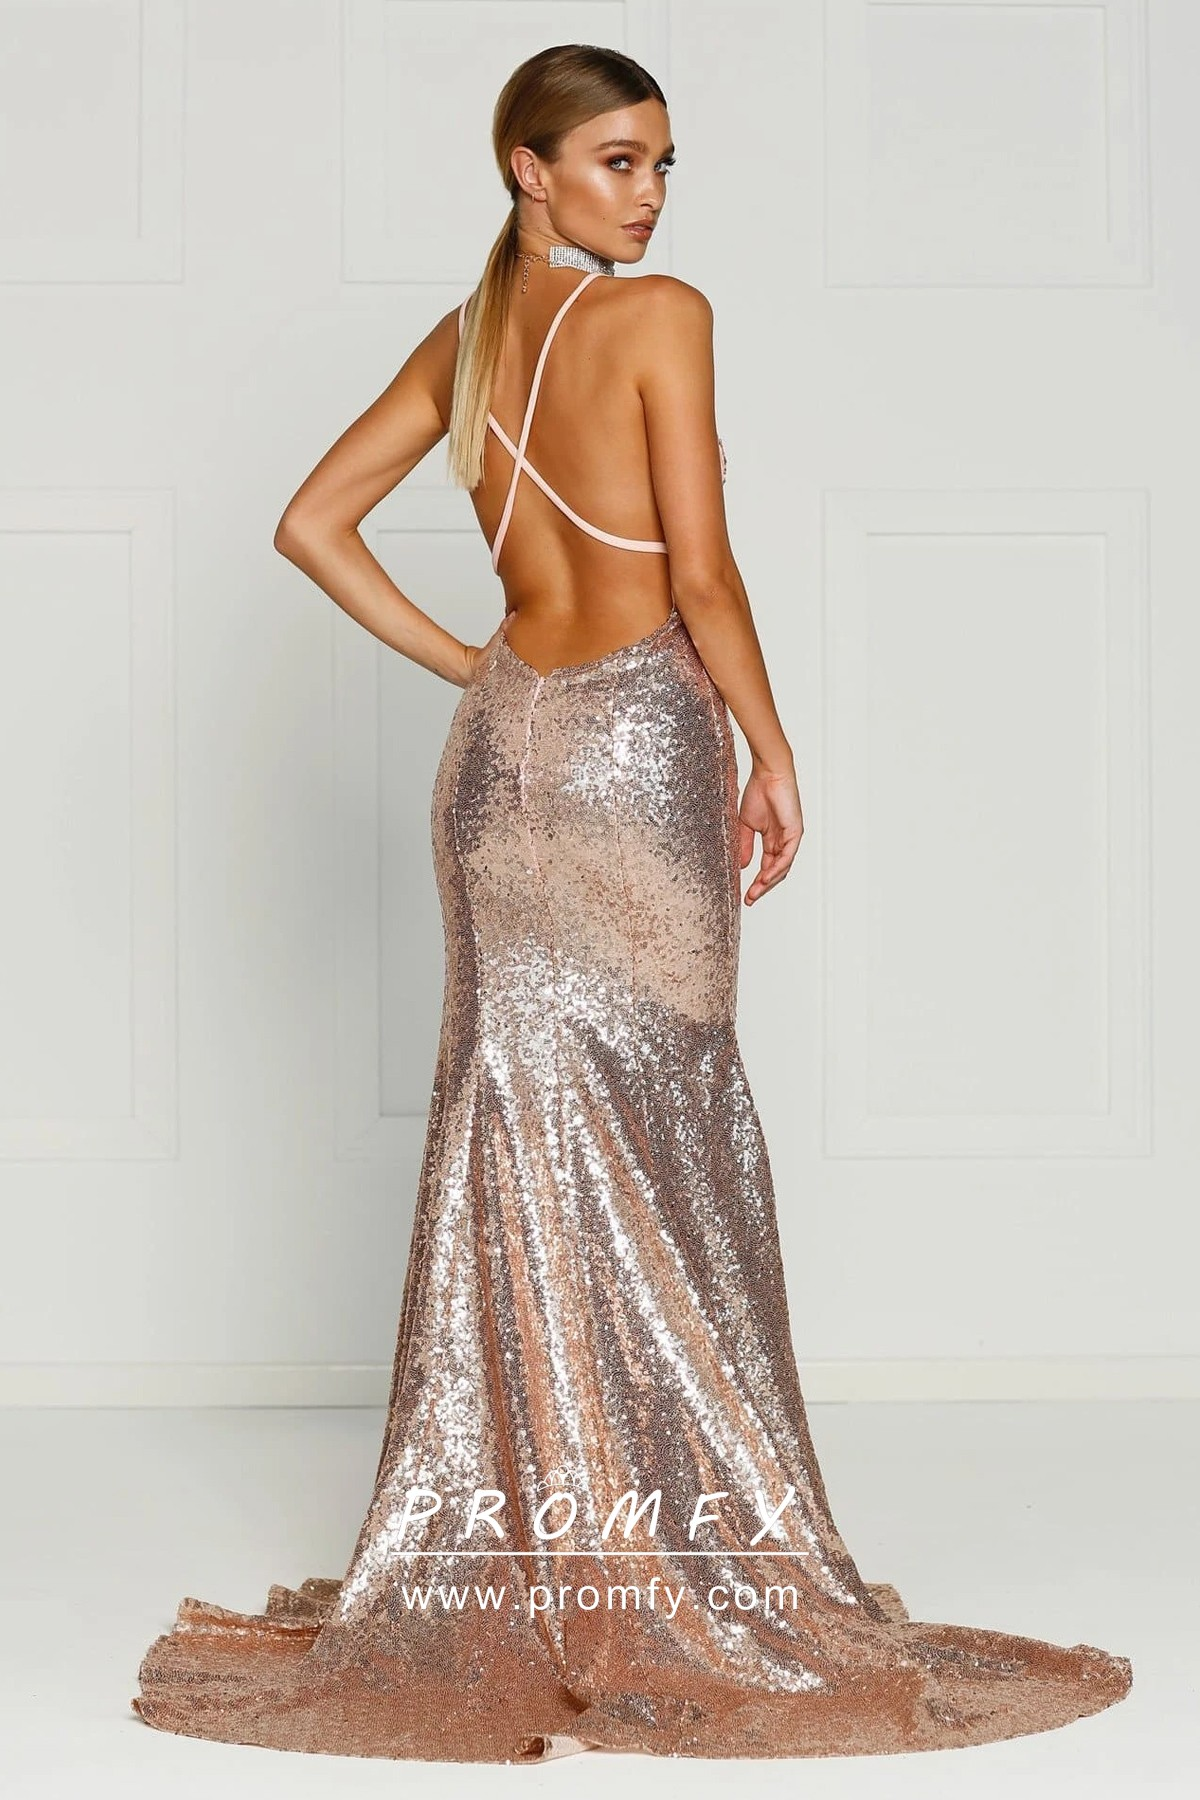 Long V-Neck Prom Dress with Sequin Print